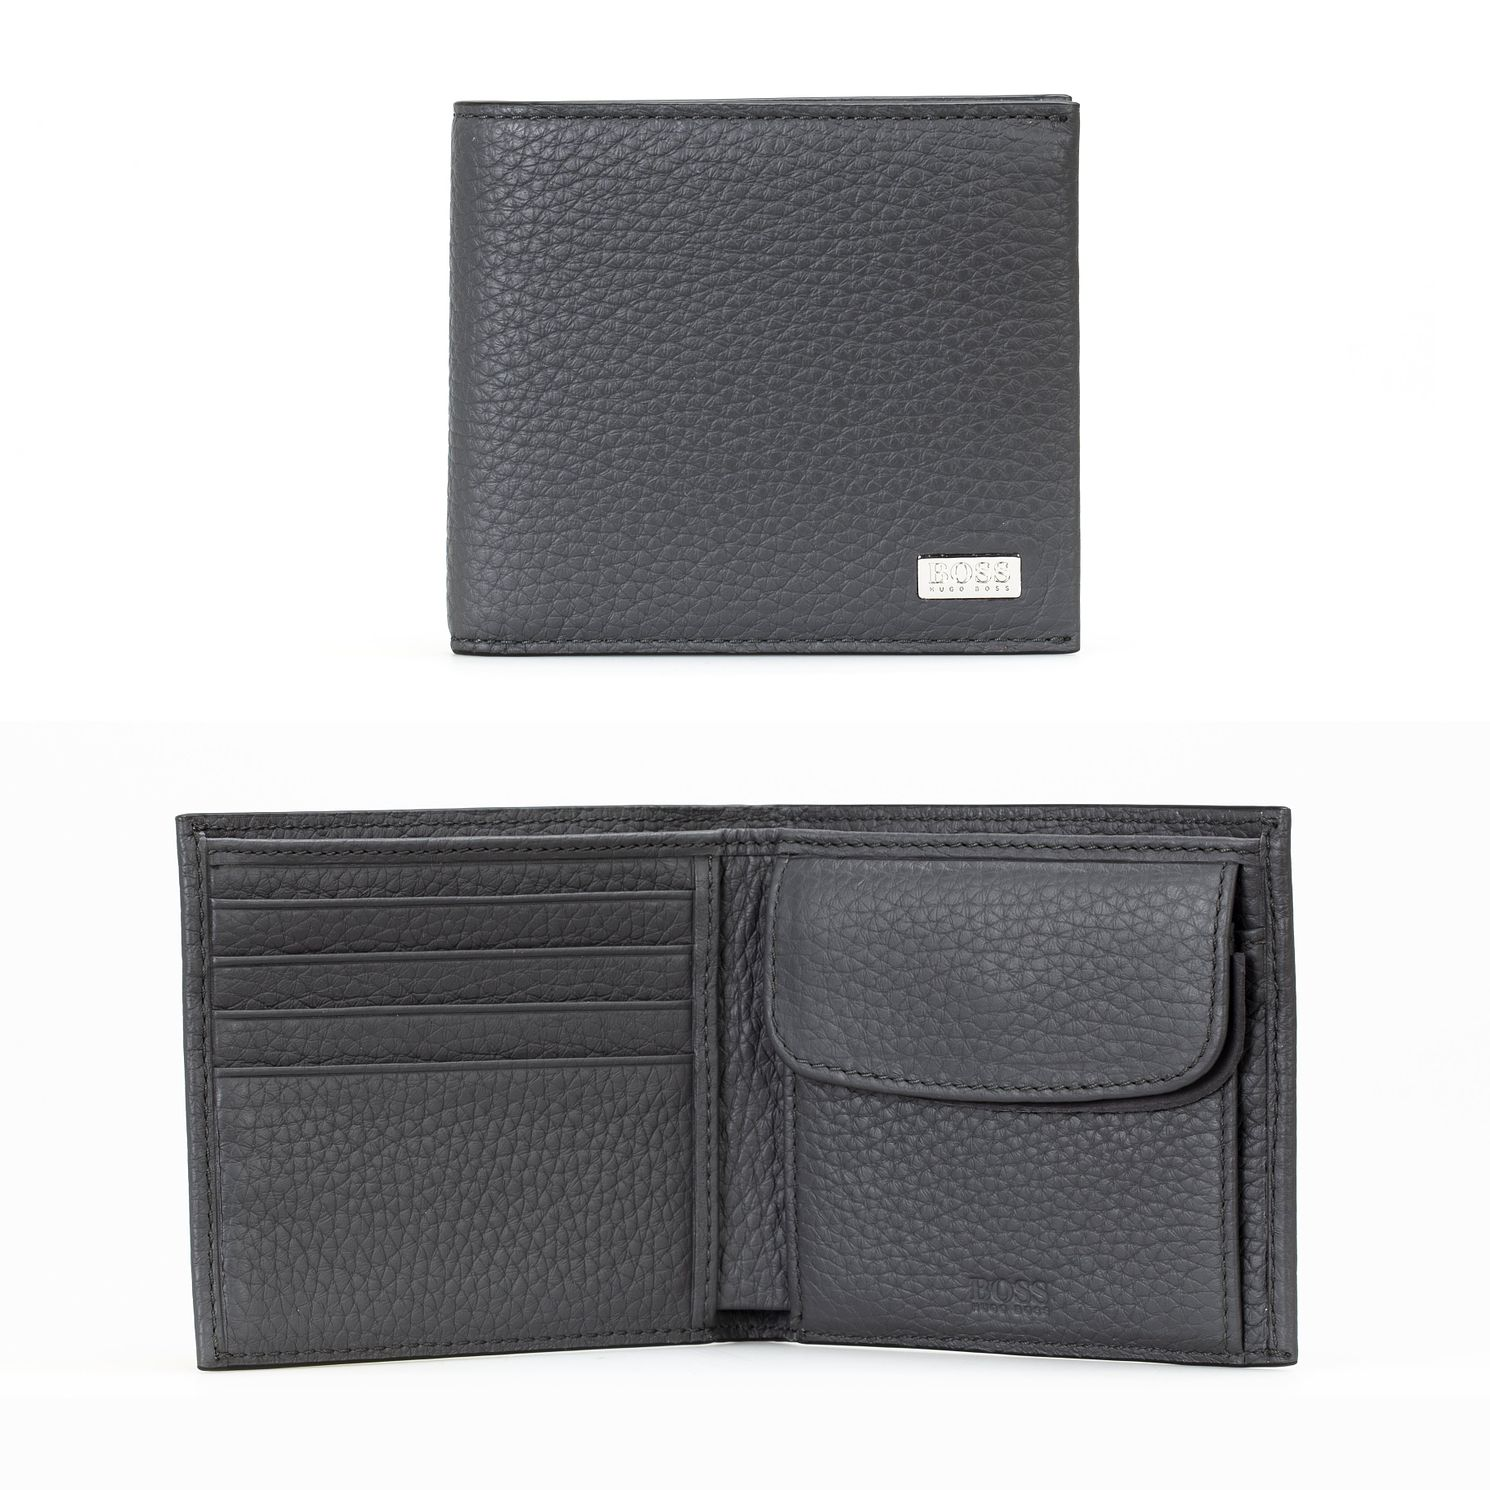 BOSS Crosstown Men's Black Leather Wallet - Product number 4813456